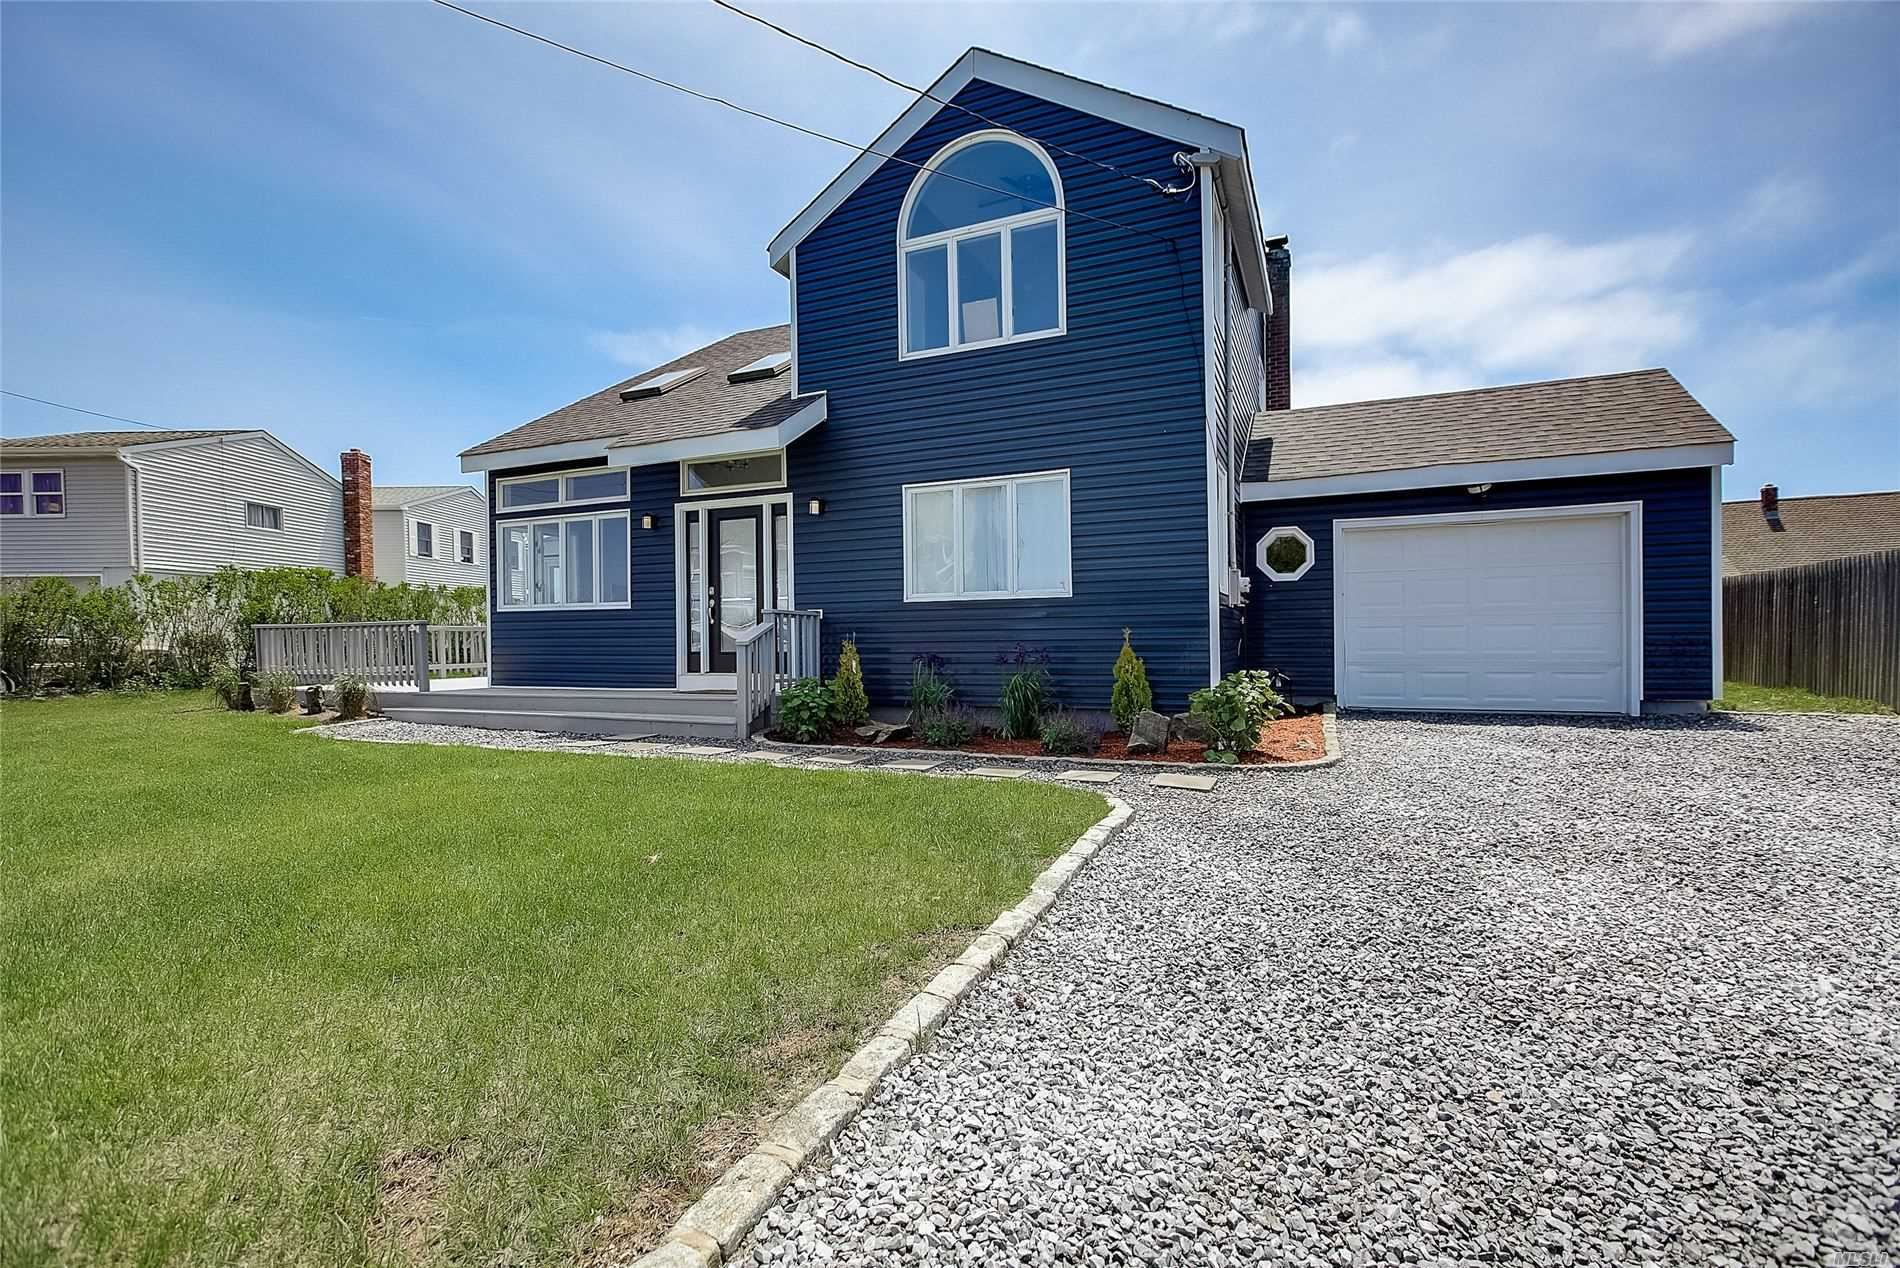 6 Oceanview Place, Center Moriches, NY 11934 - MLS#: 3218208